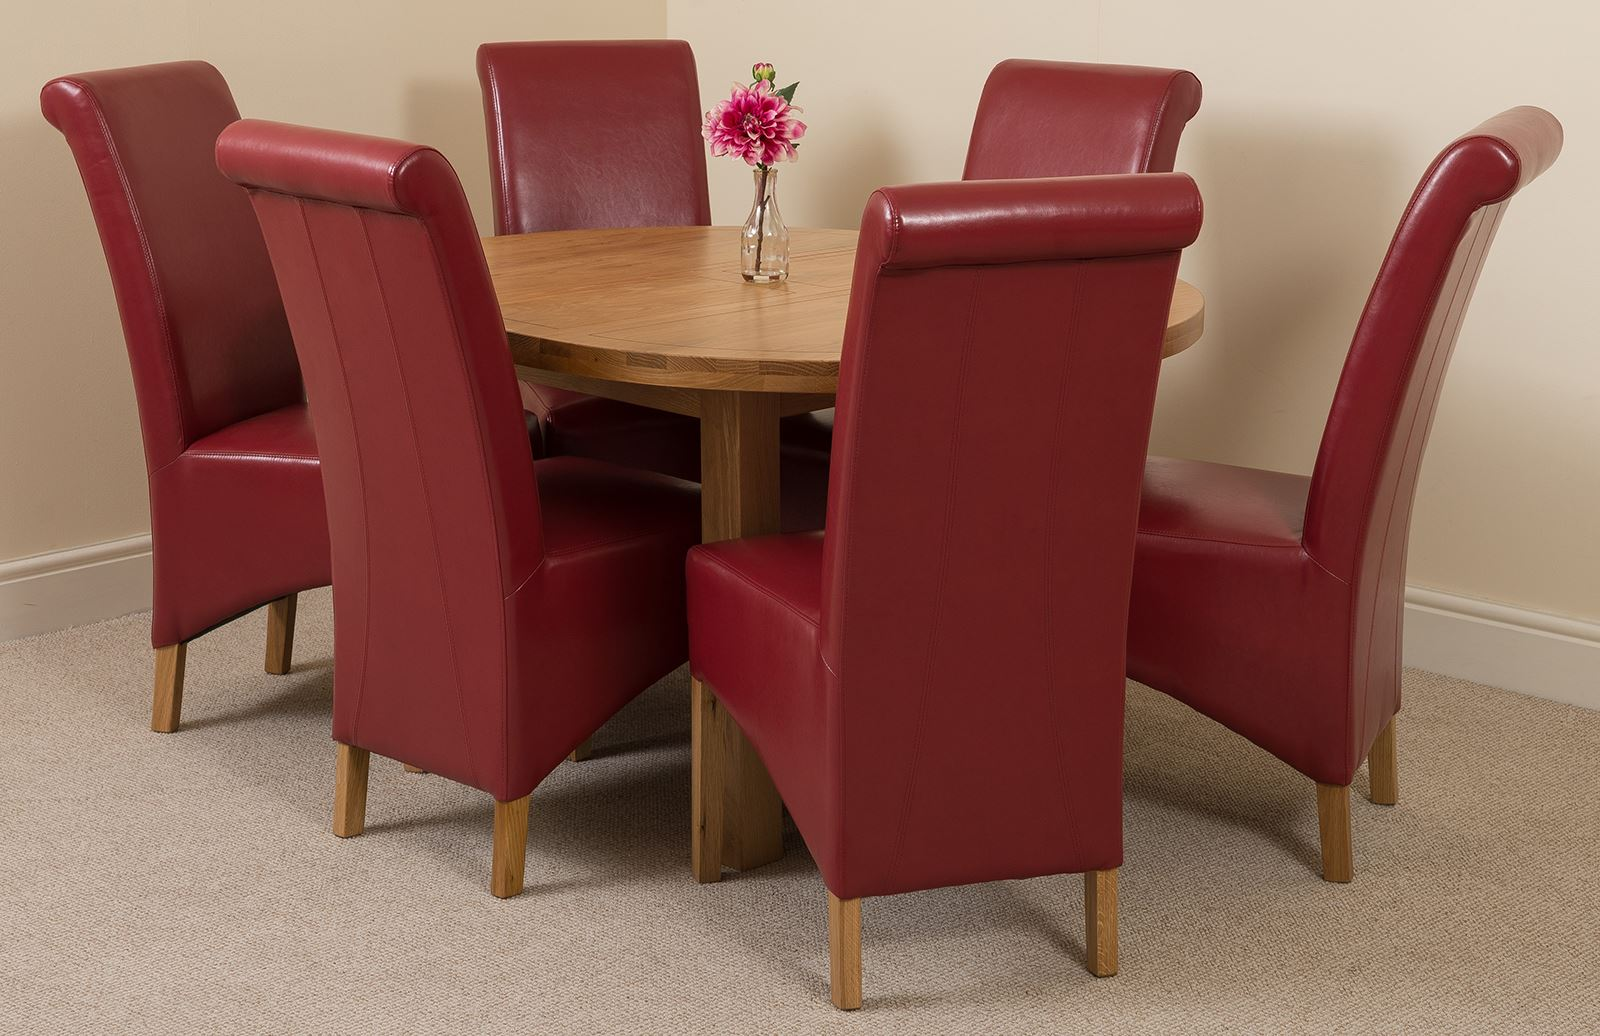 Edmonton Extending Oval Solid Oak Dining Table   6 Red Leather ChairsEdmonton Extending Oval Solid Oak Dining Table   6 Red Leather  . Dining Table And 6 Red Leather Chairs. Home Design Ideas